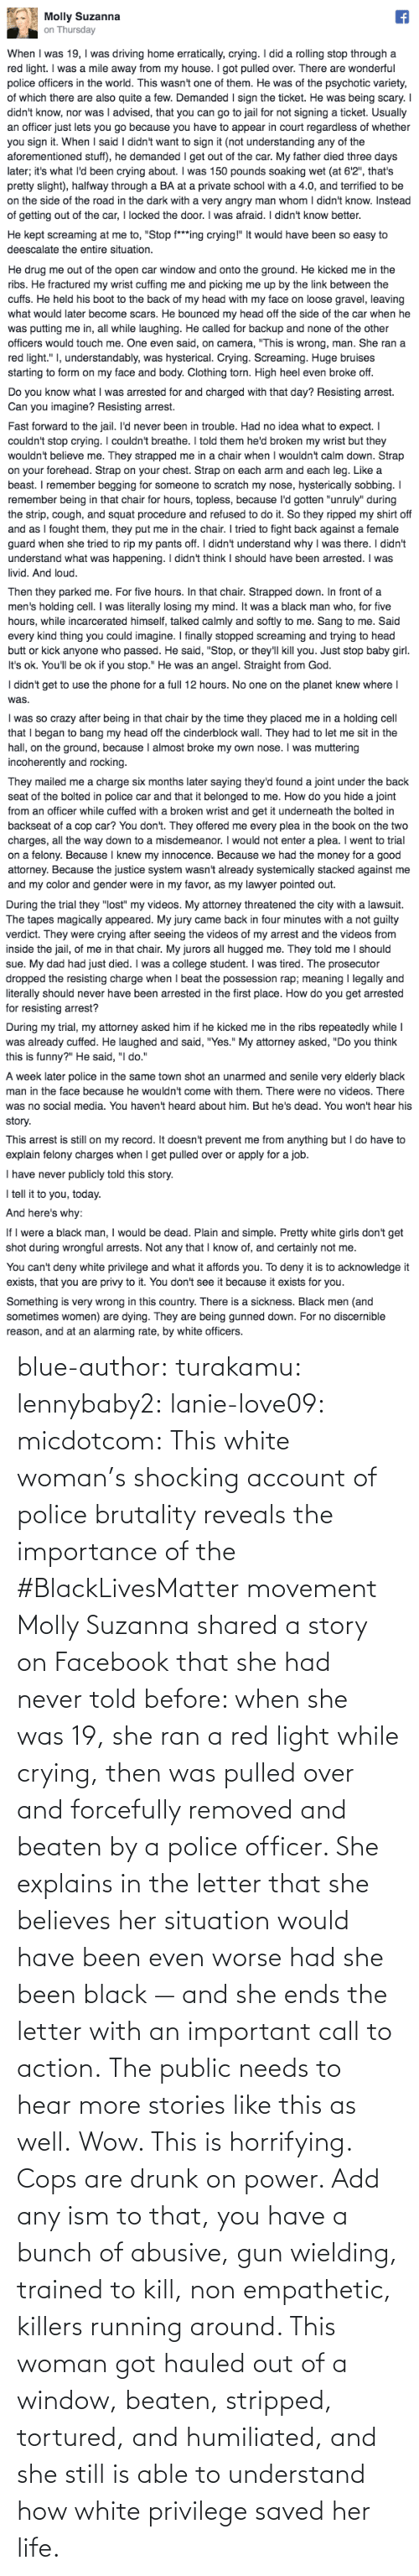 Blue: blue-author: turakamu:  lennybaby2:  lanie-love09:  micdotcom:  This white woman's shocking account of police brutality reveals the importance of the #BlackLivesMatter movement Molly Suzanna shared a story on Facebook that she had never told before: when she was 19, she ran a red light while crying, then was pulled over and forcefully removed and beaten by a police officer. She explains in the letter that she believes her situation would have been even worse had she been black — and she ends the letter with an important call to action.  The public needs to hear more stories like this as well.  Wow. This is horrifying.  Cops are drunk on power. Add any ism to that, you have a bunch of abusive, gun wielding, trained to kill, non empathetic, killers running around.    This woman got hauled out of a window, beaten, stripped, tortured, and humiliated, and she still is able to understand how white privilege saved her life.